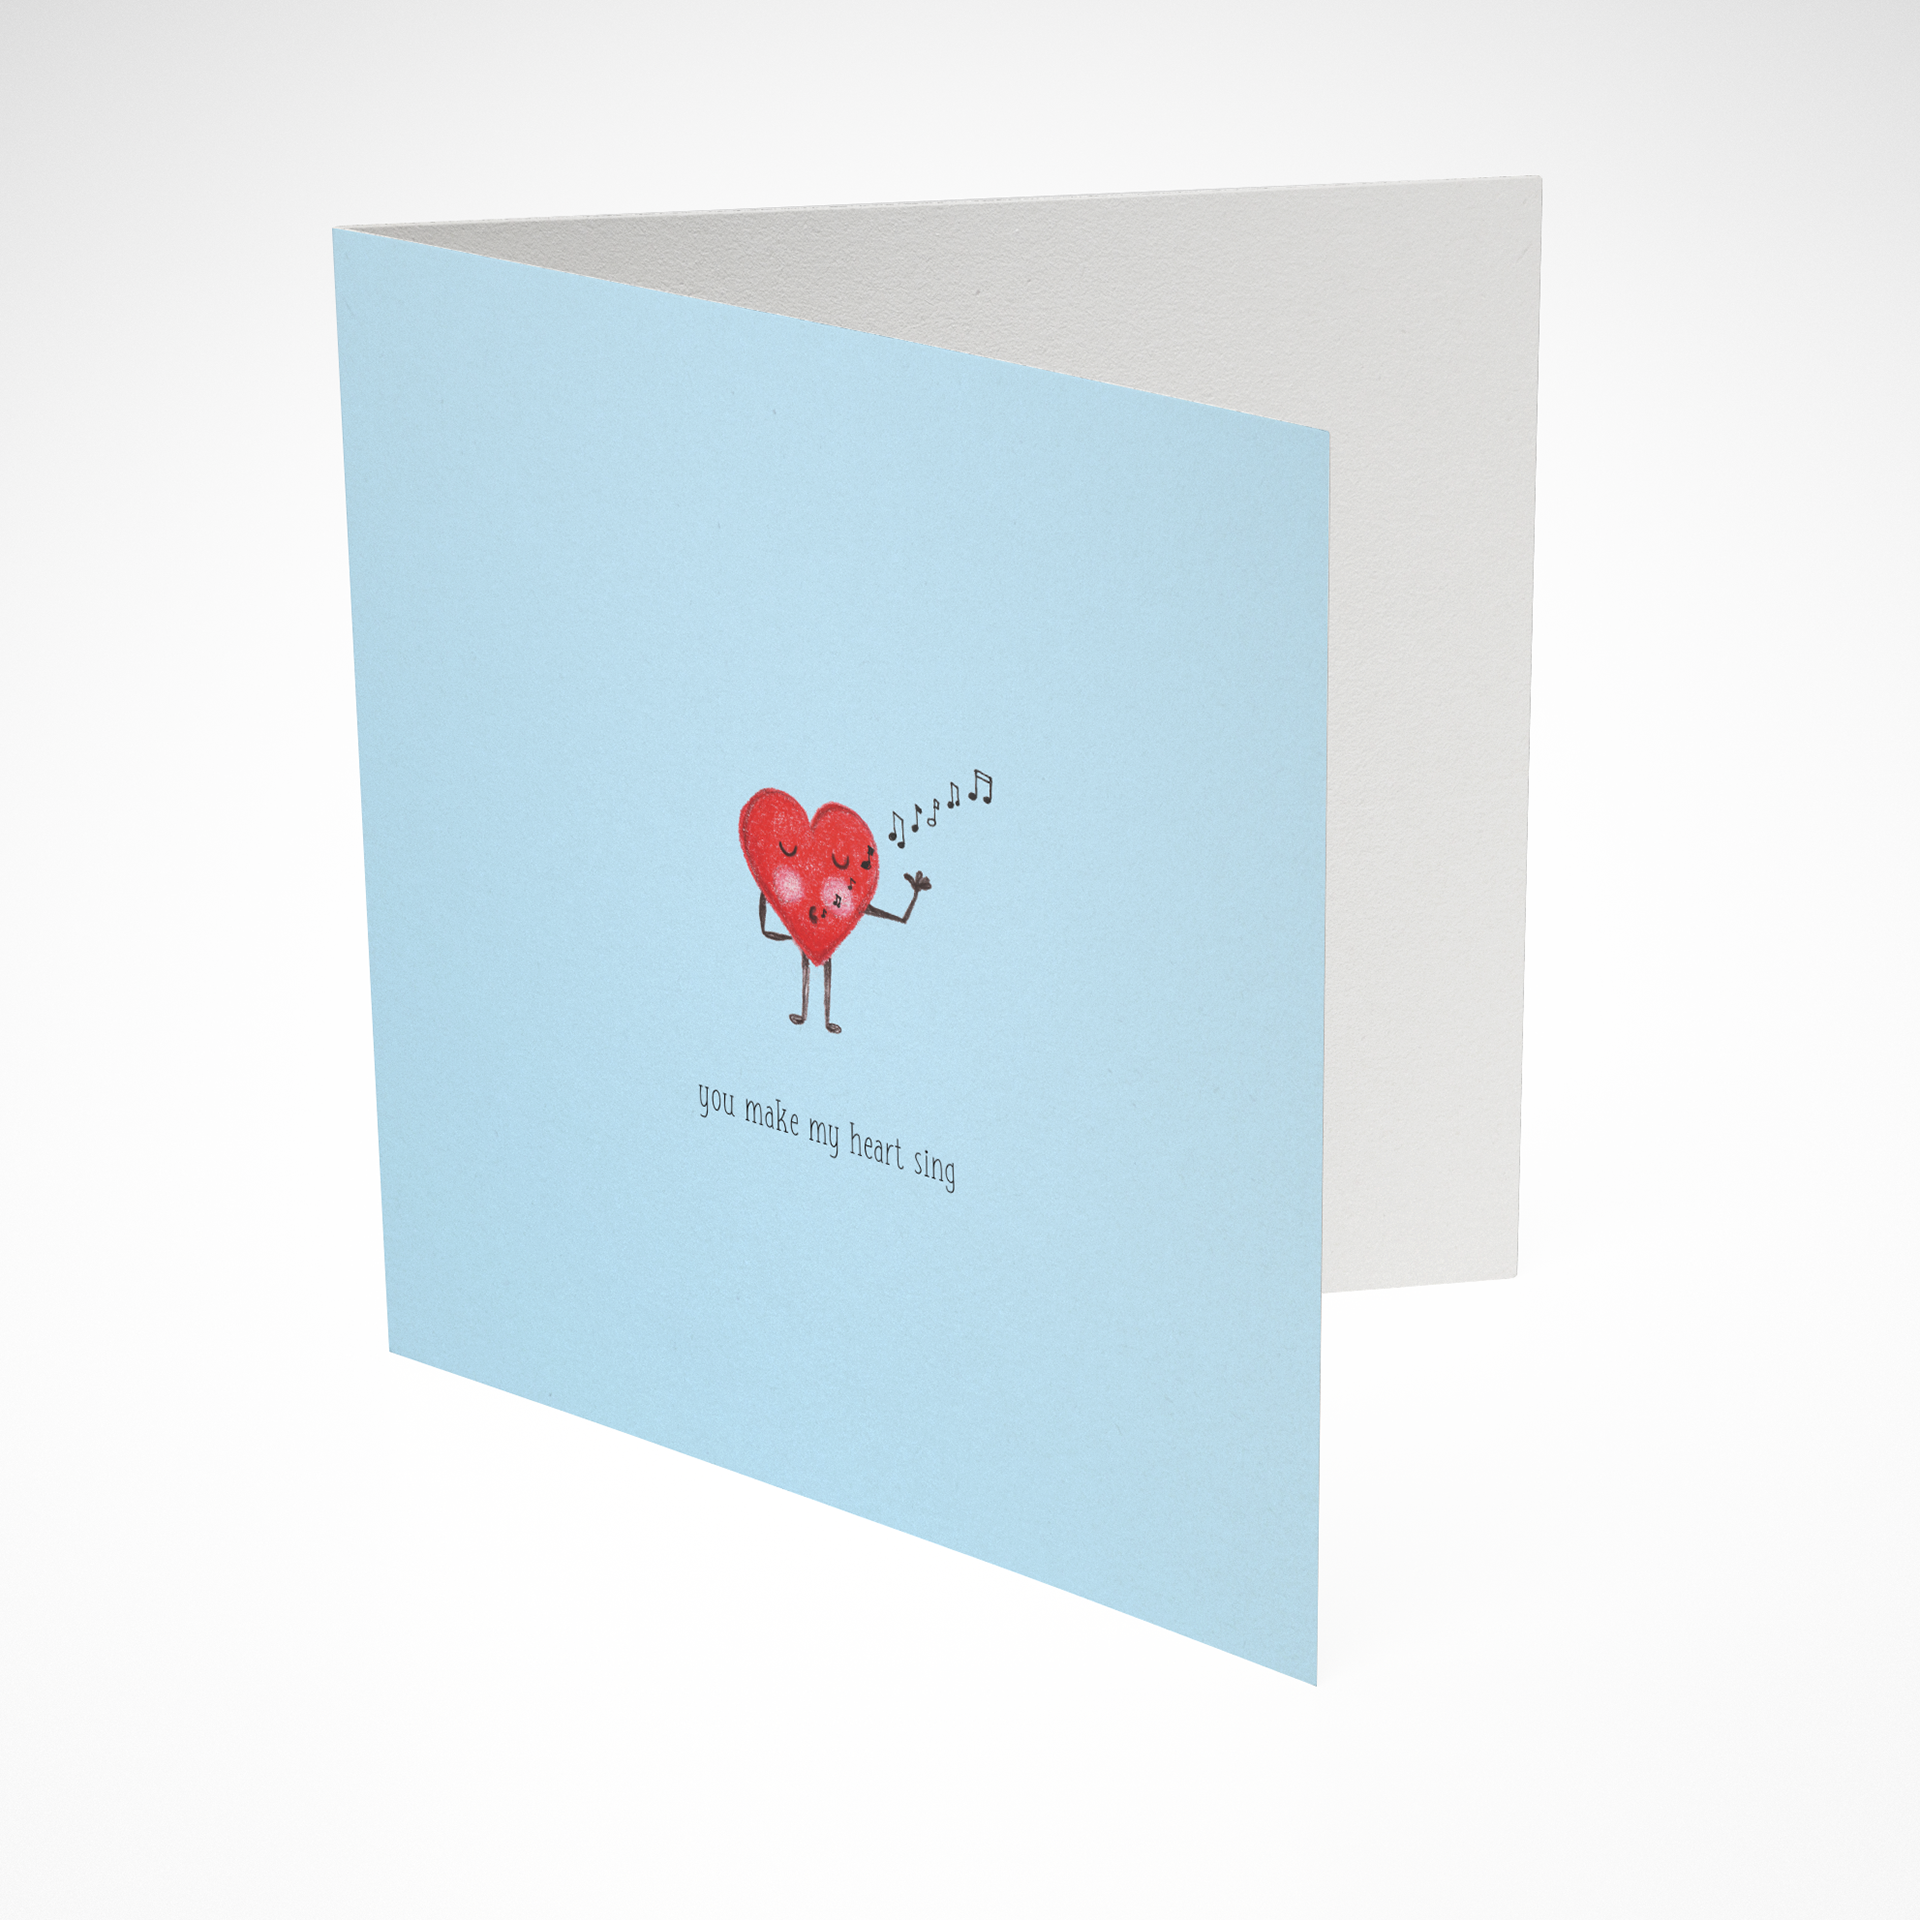 Fintan Wall Design Illustrated Greeting Cards